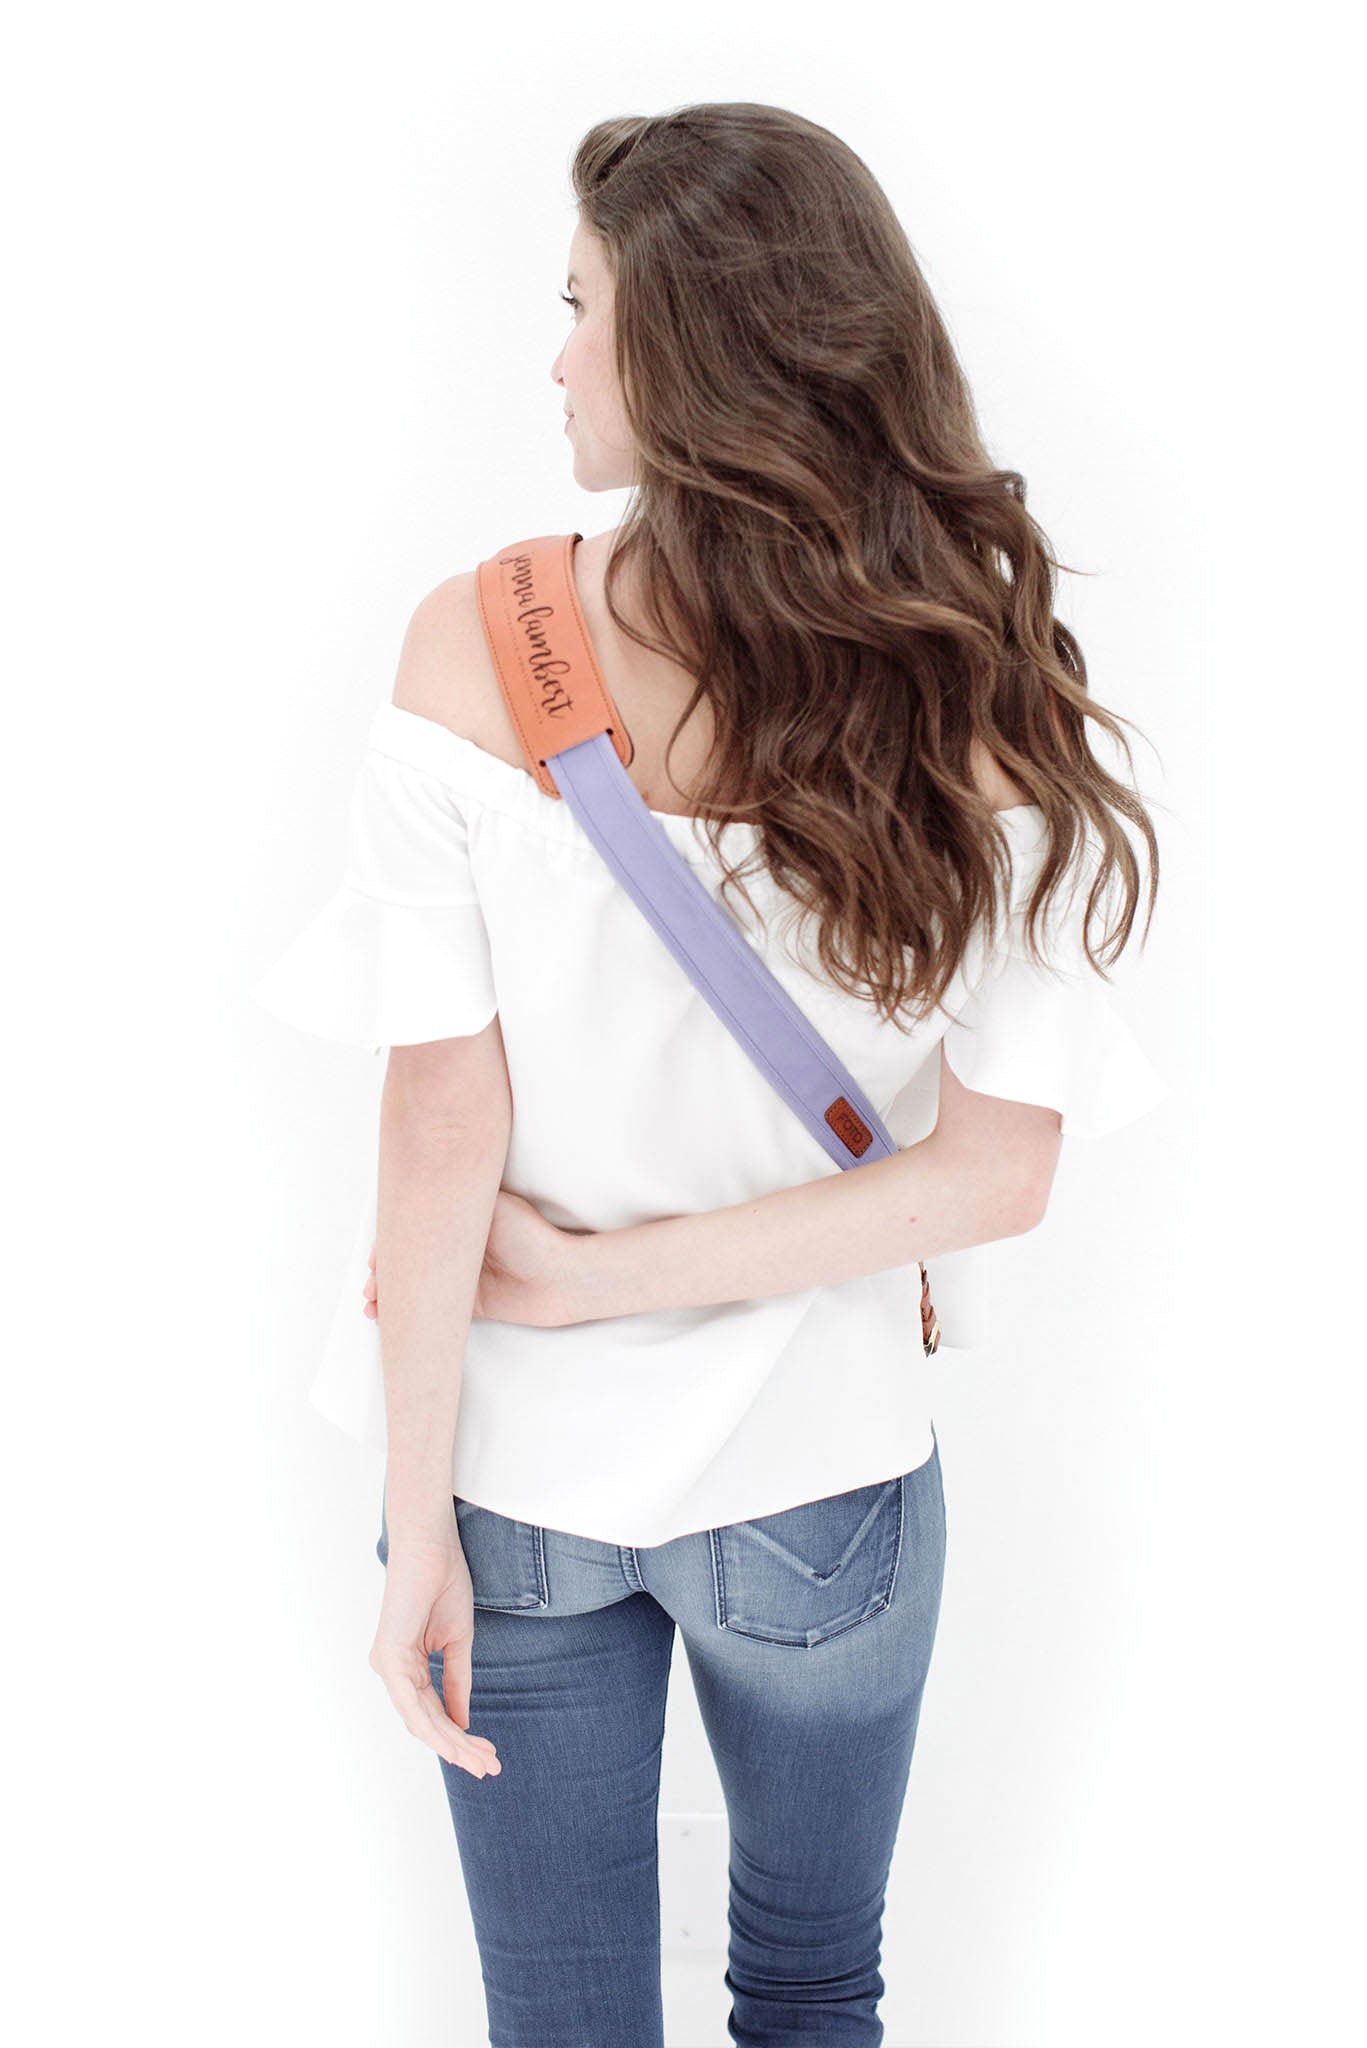 FOTO | Orchid Fotostrap - a lavender purple canvas and genuine leather camera strap that can be personalized with a monogram or business logo, making it the perfect personalized gift!